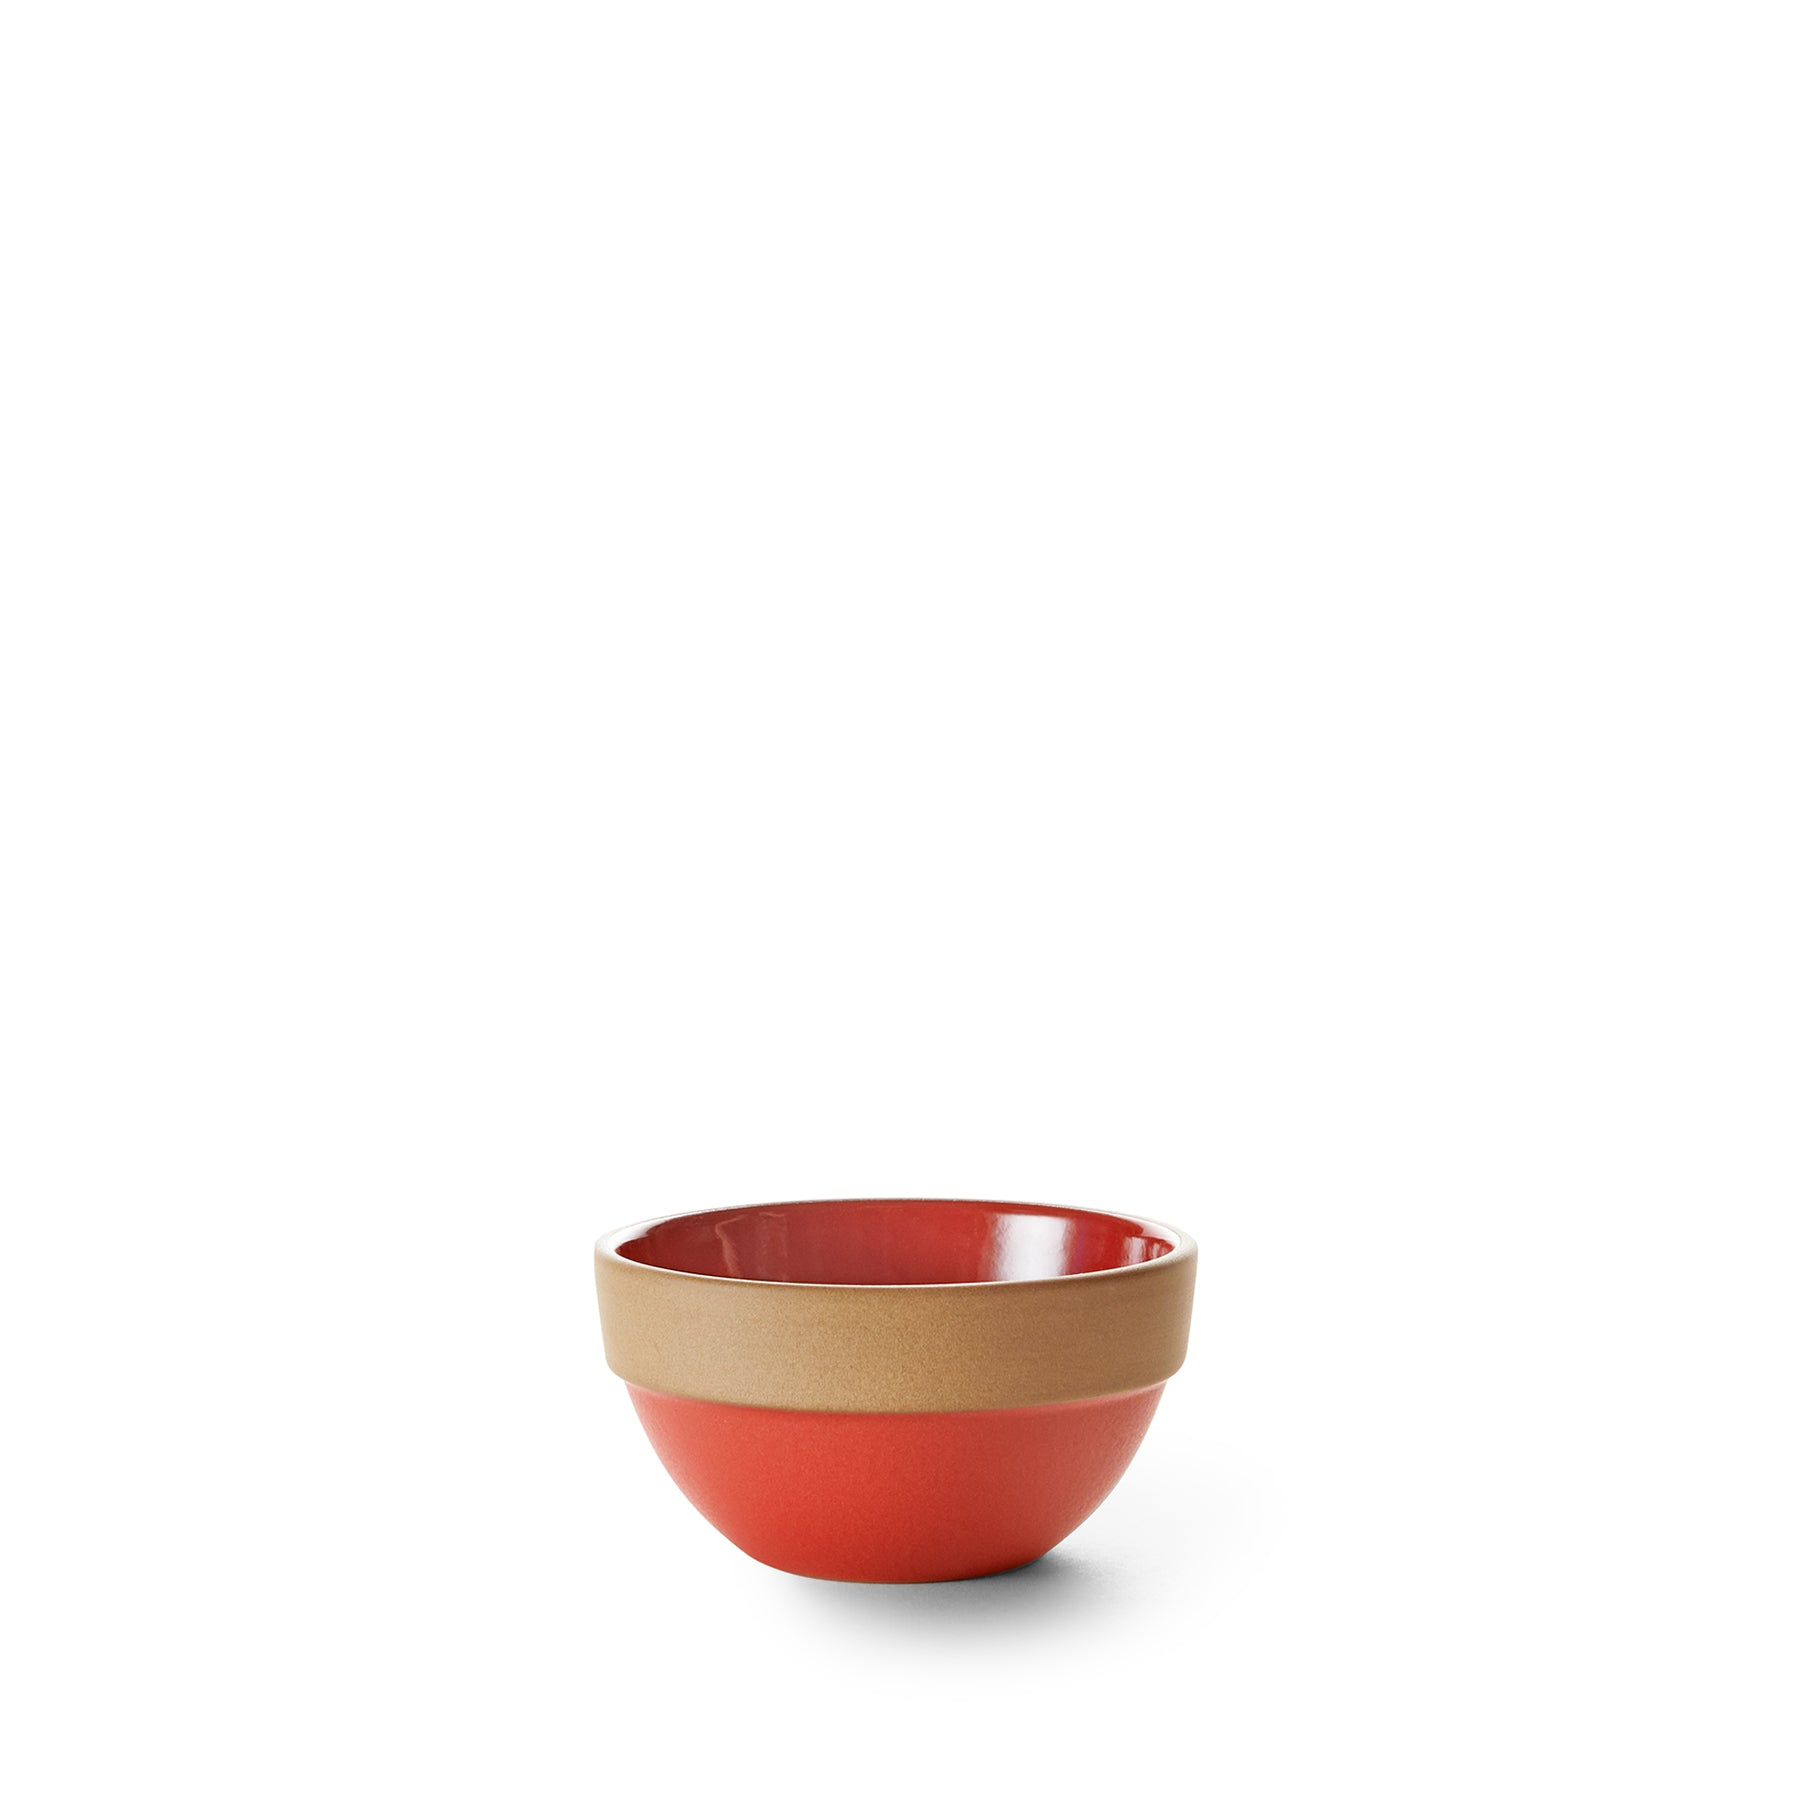 Rim Dessert Bowl in Ruby Red/Suede Red Zoom Image 1